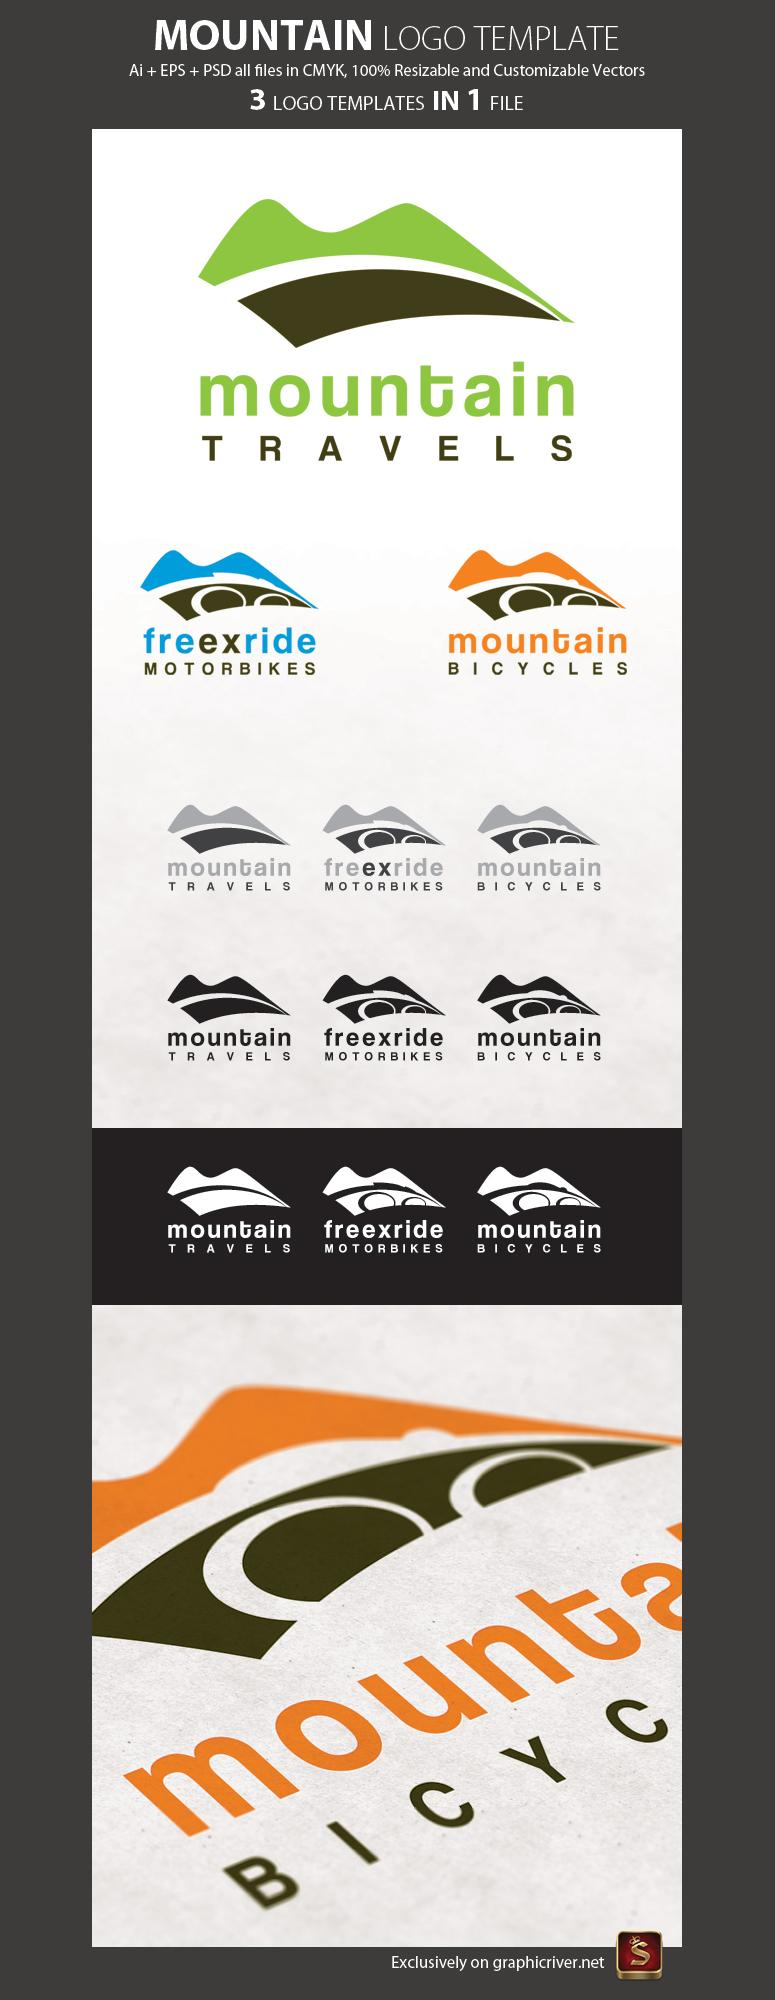 10 Mountain Logo PSD Images